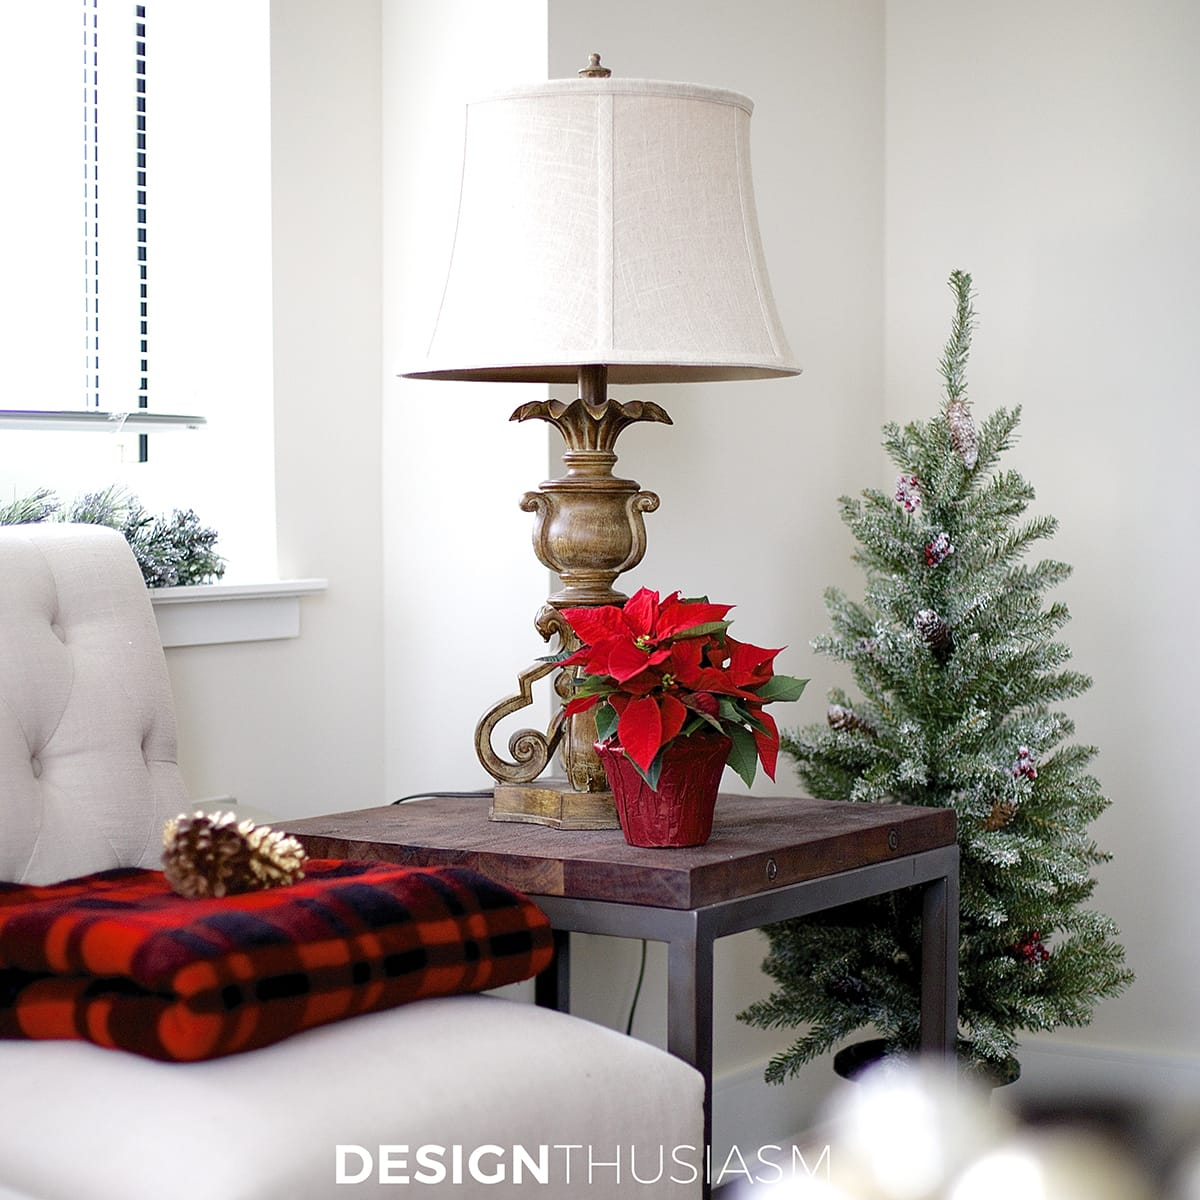 12 Easy Holiday Decorating Ideas for a Small Apartment Holiday Decorating Ideas for a Small Apartment   Designthusiasm com